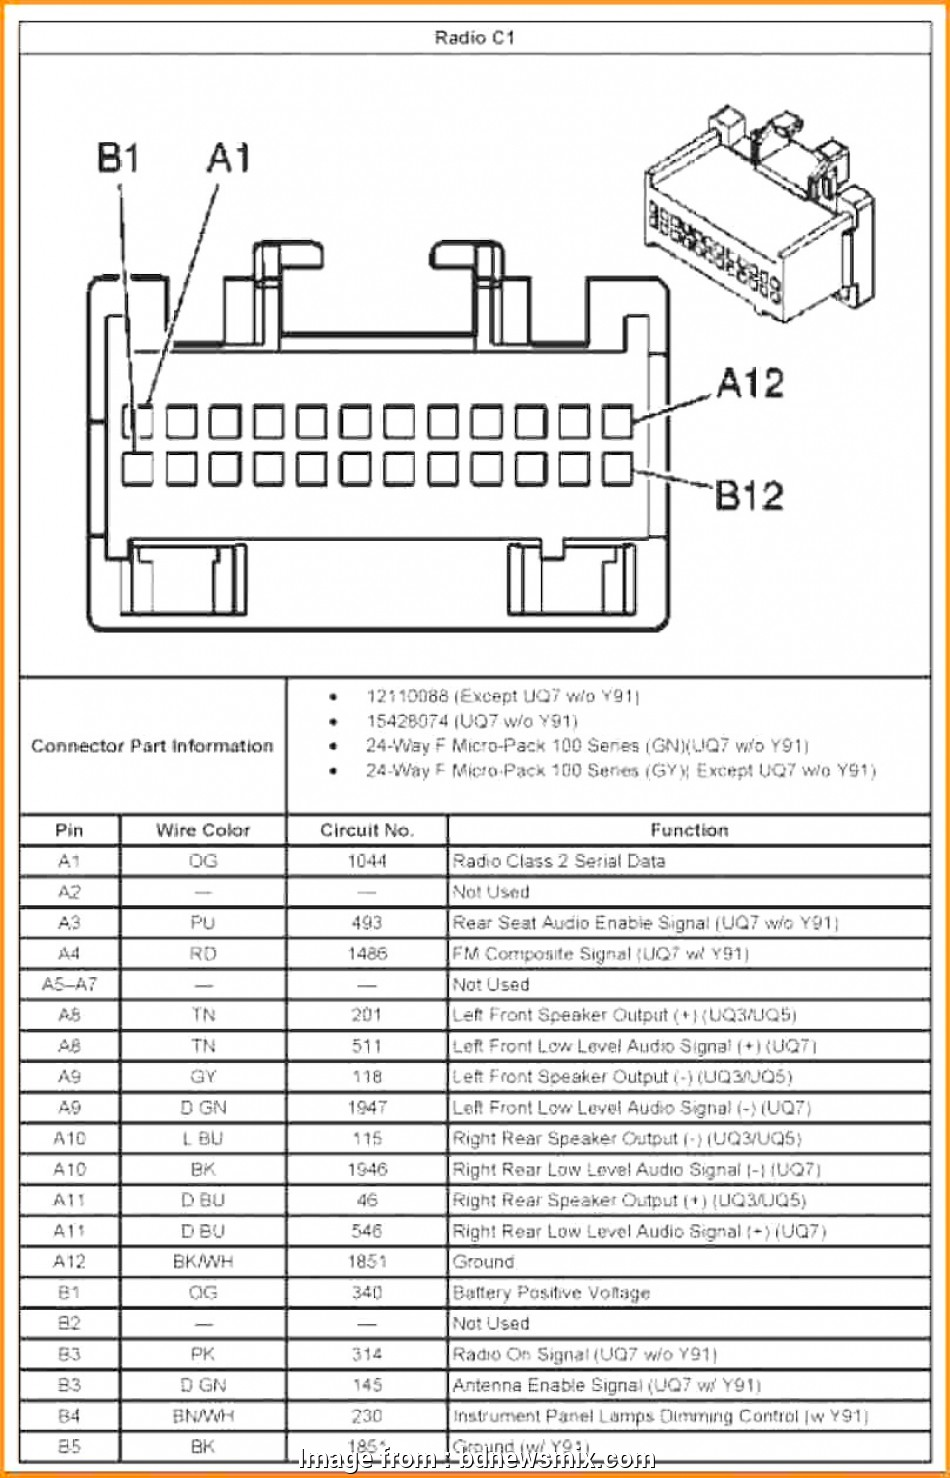 06 Duramax Starter Wiring Diagram Most 2006 Chevy Duramax